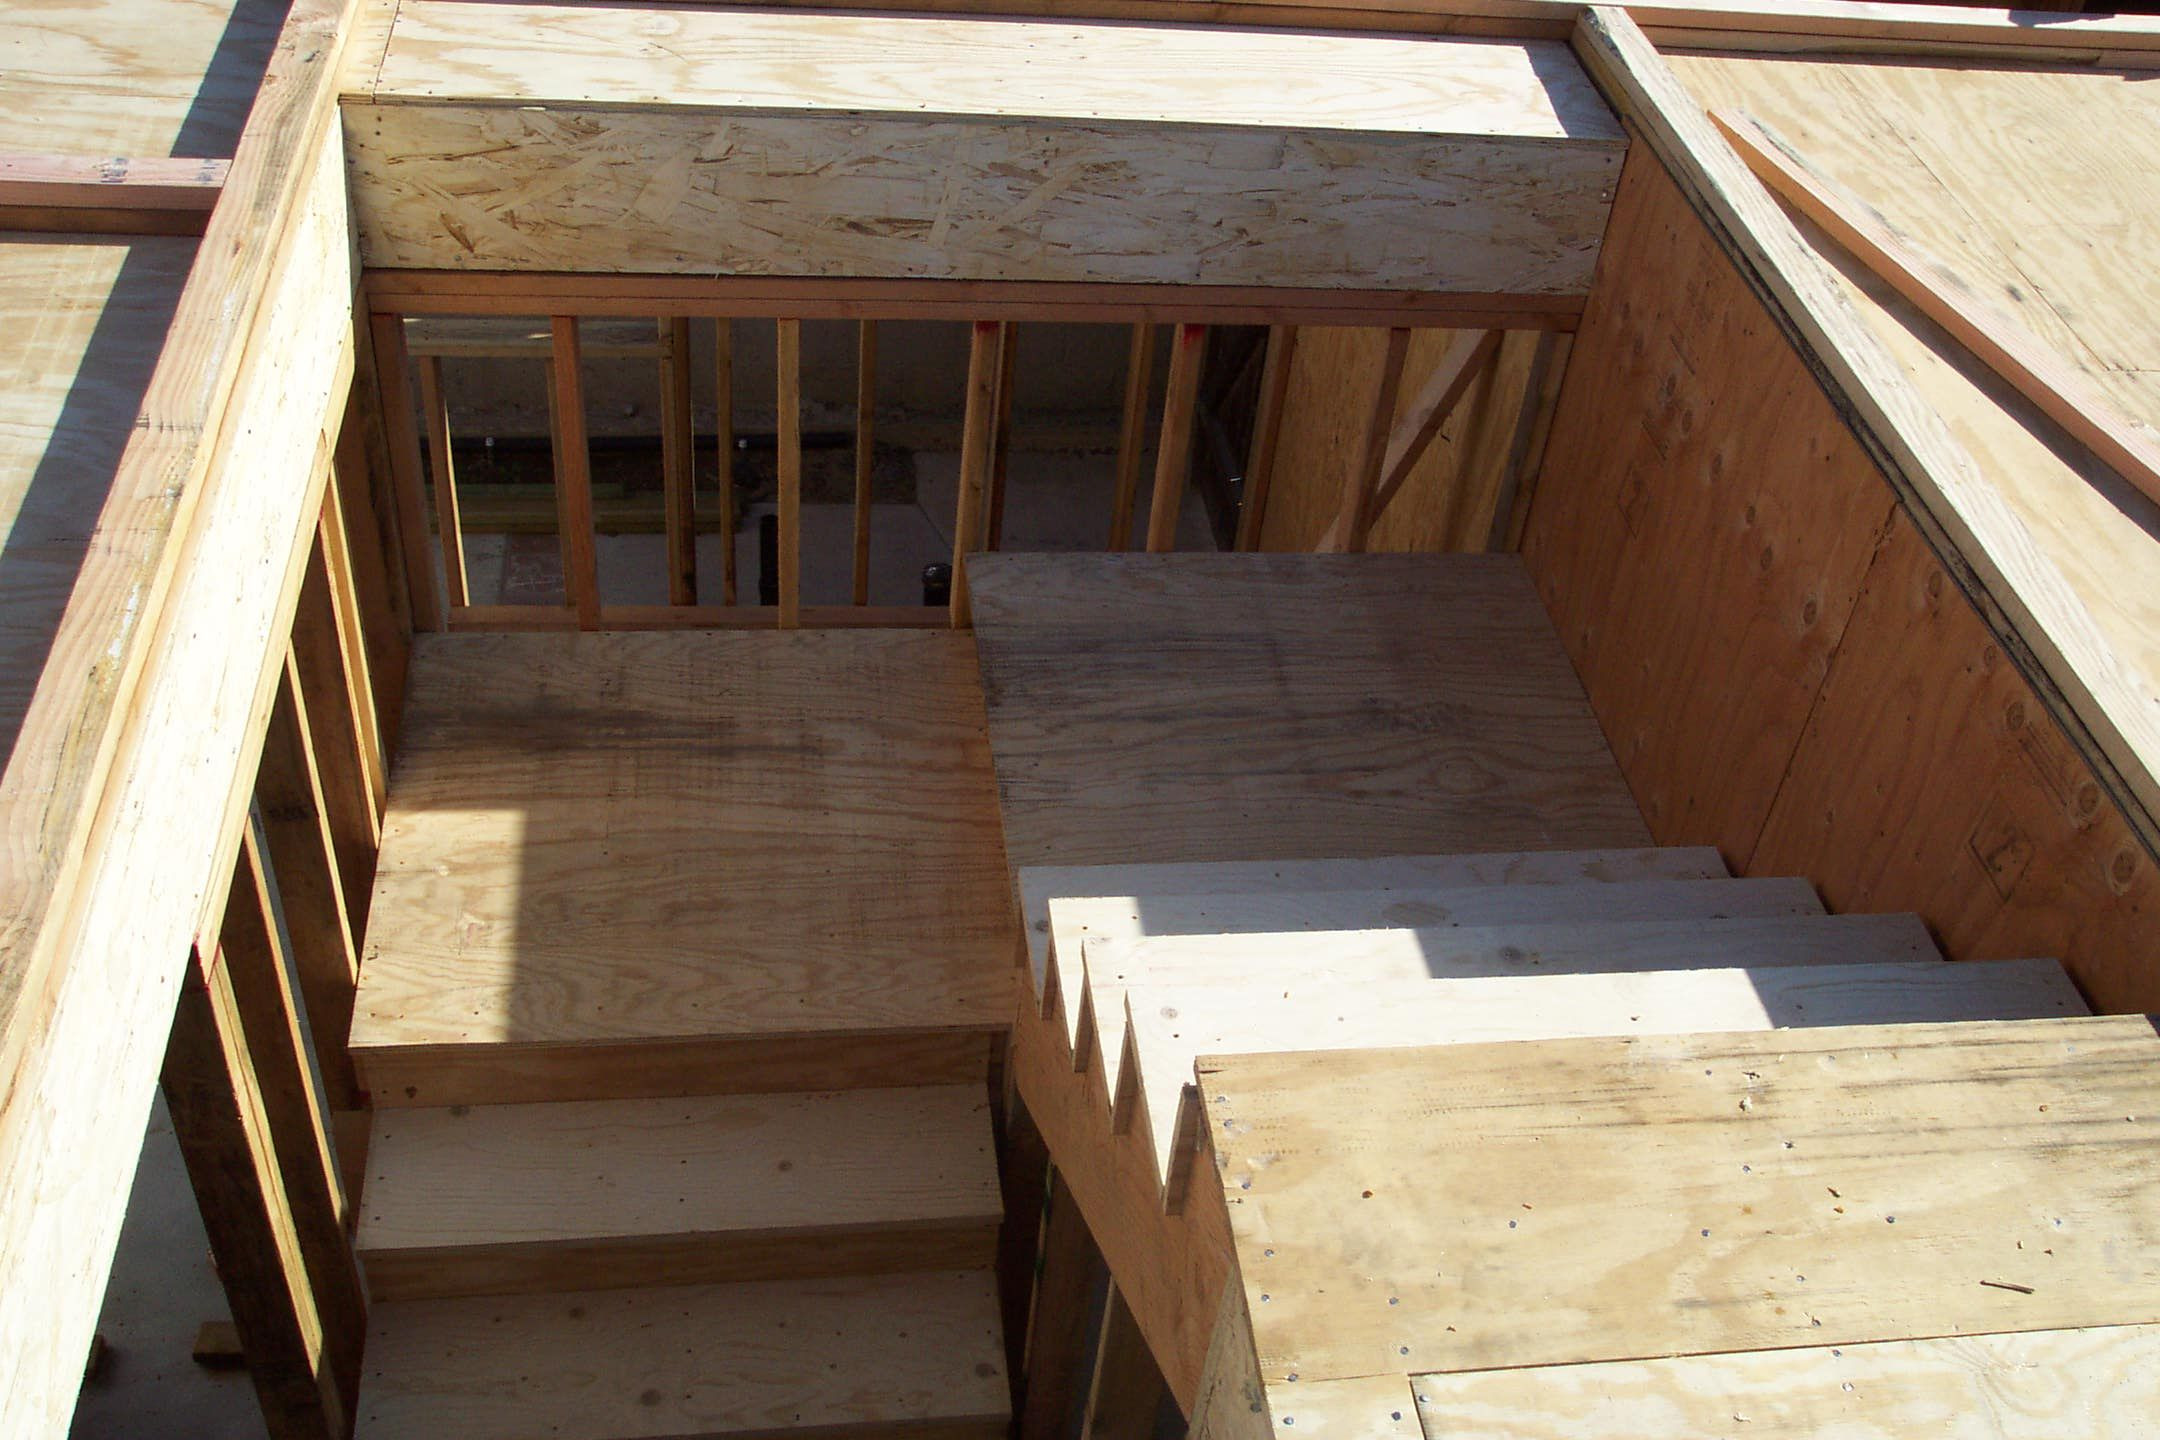 Split Landing With Plywood Sheathing Sheathing Plywood Stairs